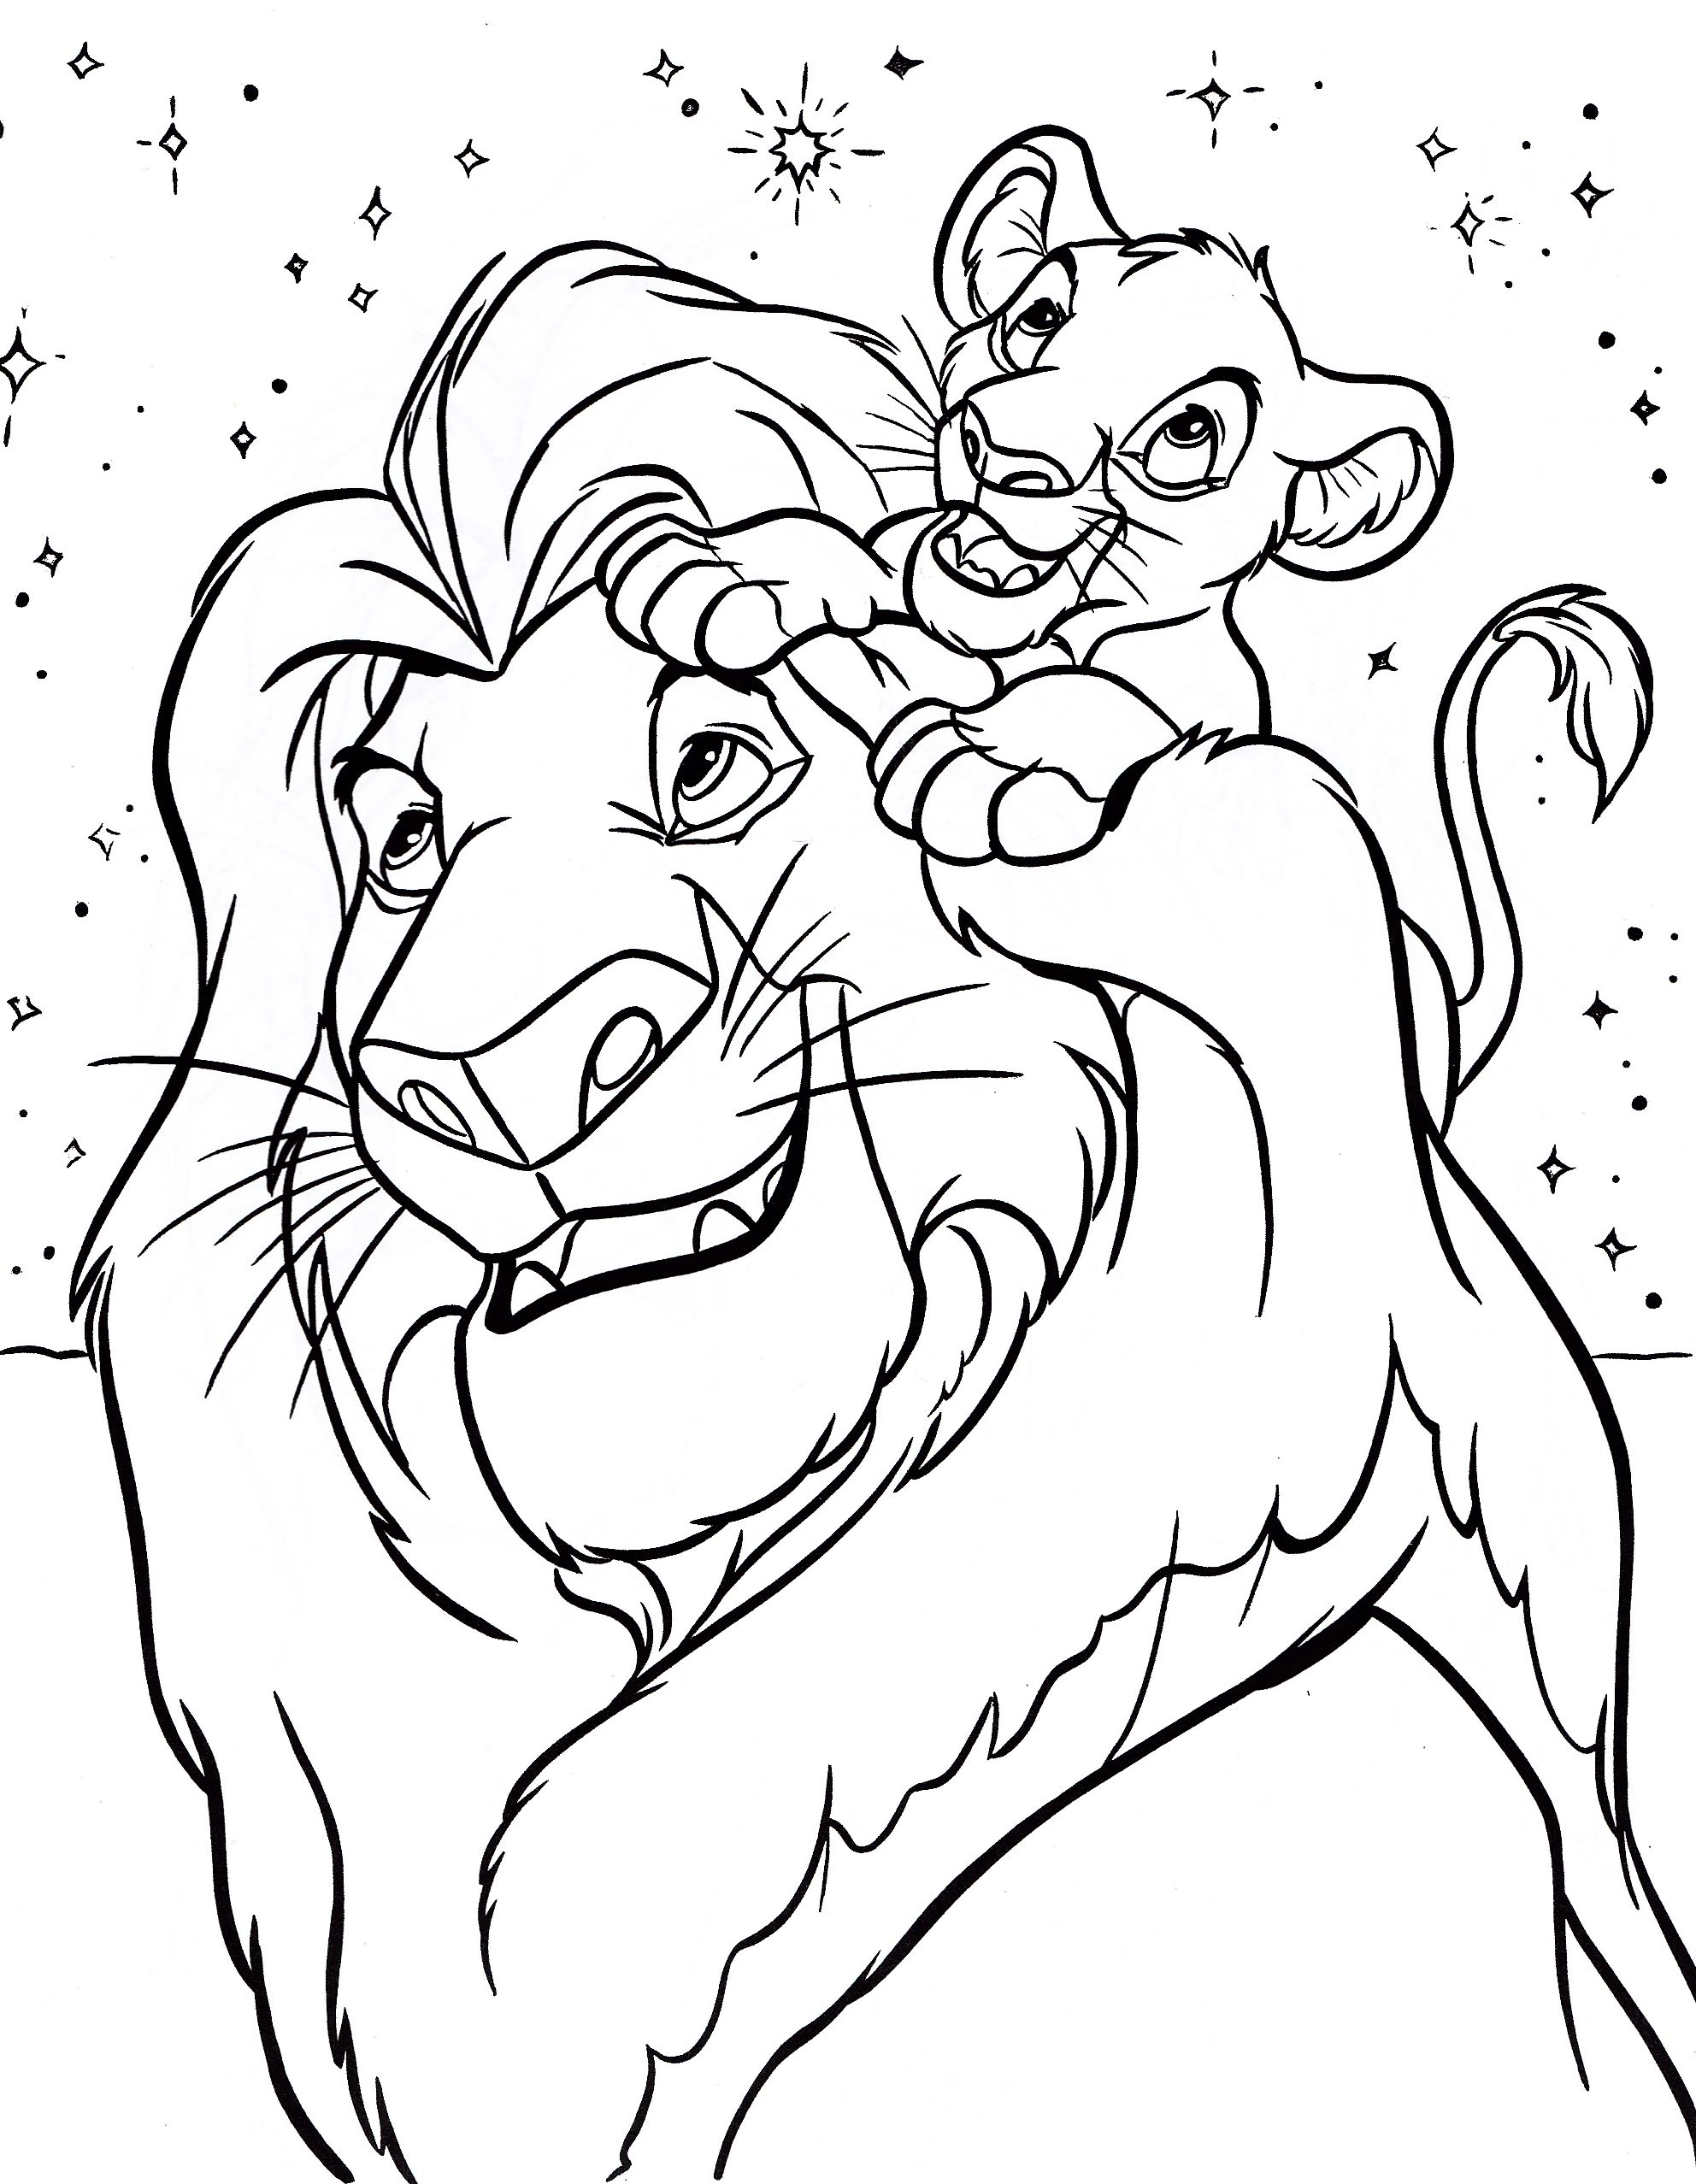 Disney coloring pages mufasa simba walt characters photo thingkid